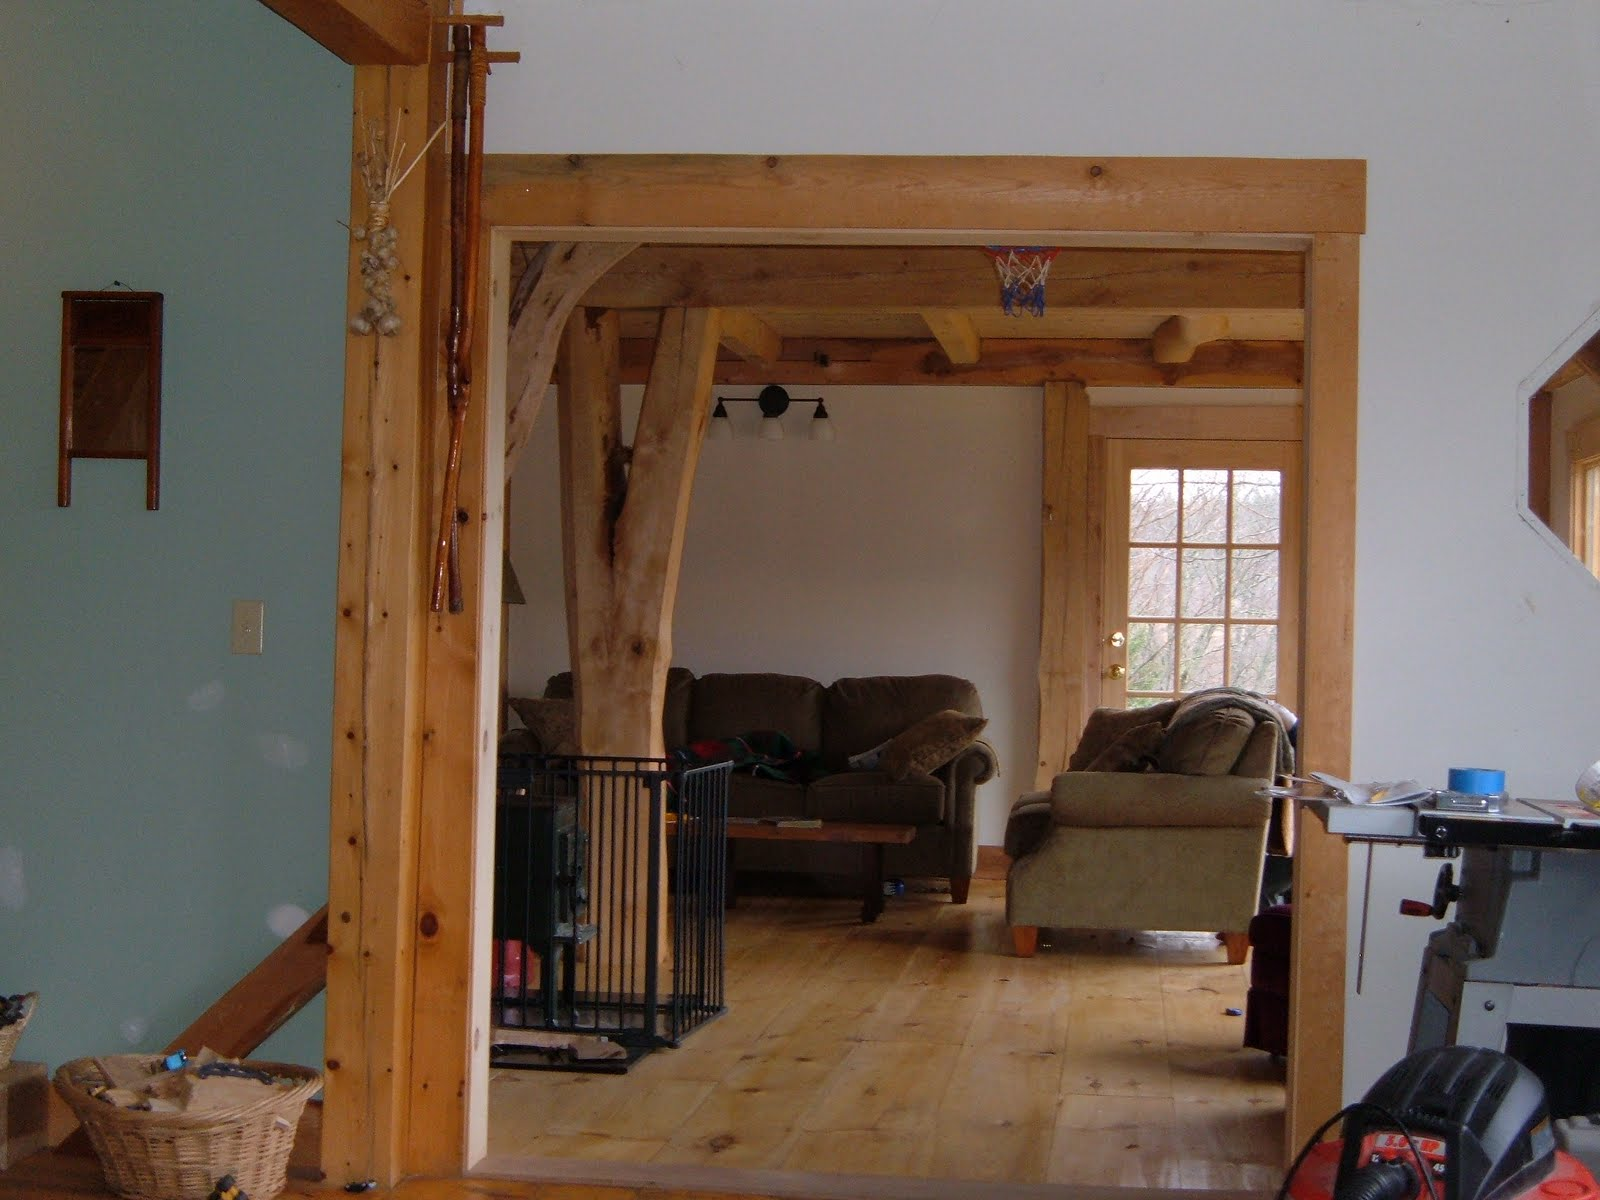 The home owners finished thier own interior.